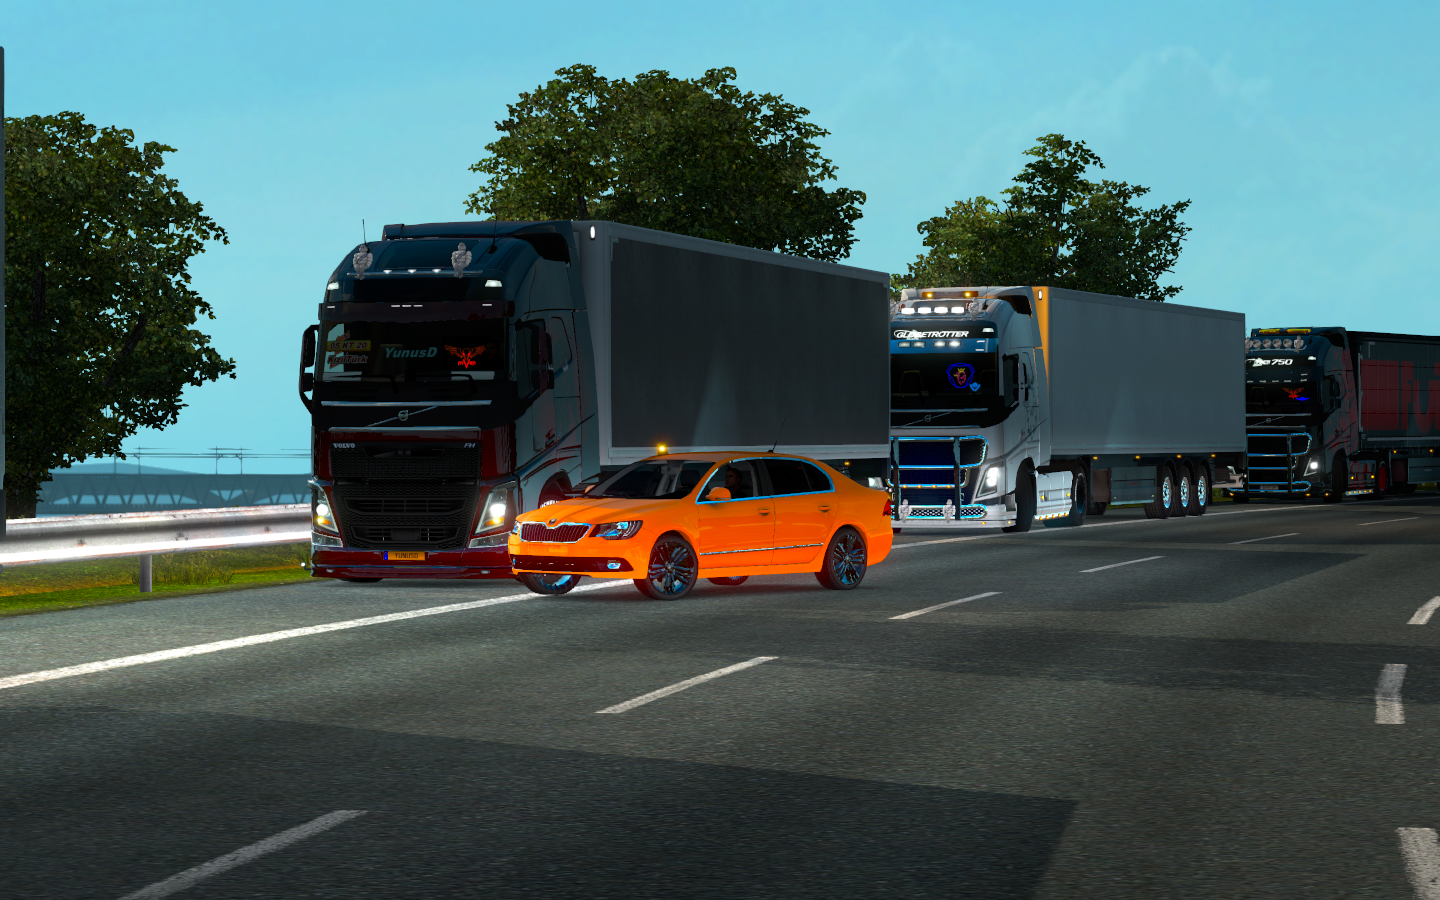 ets2_20190127_232205_00.png